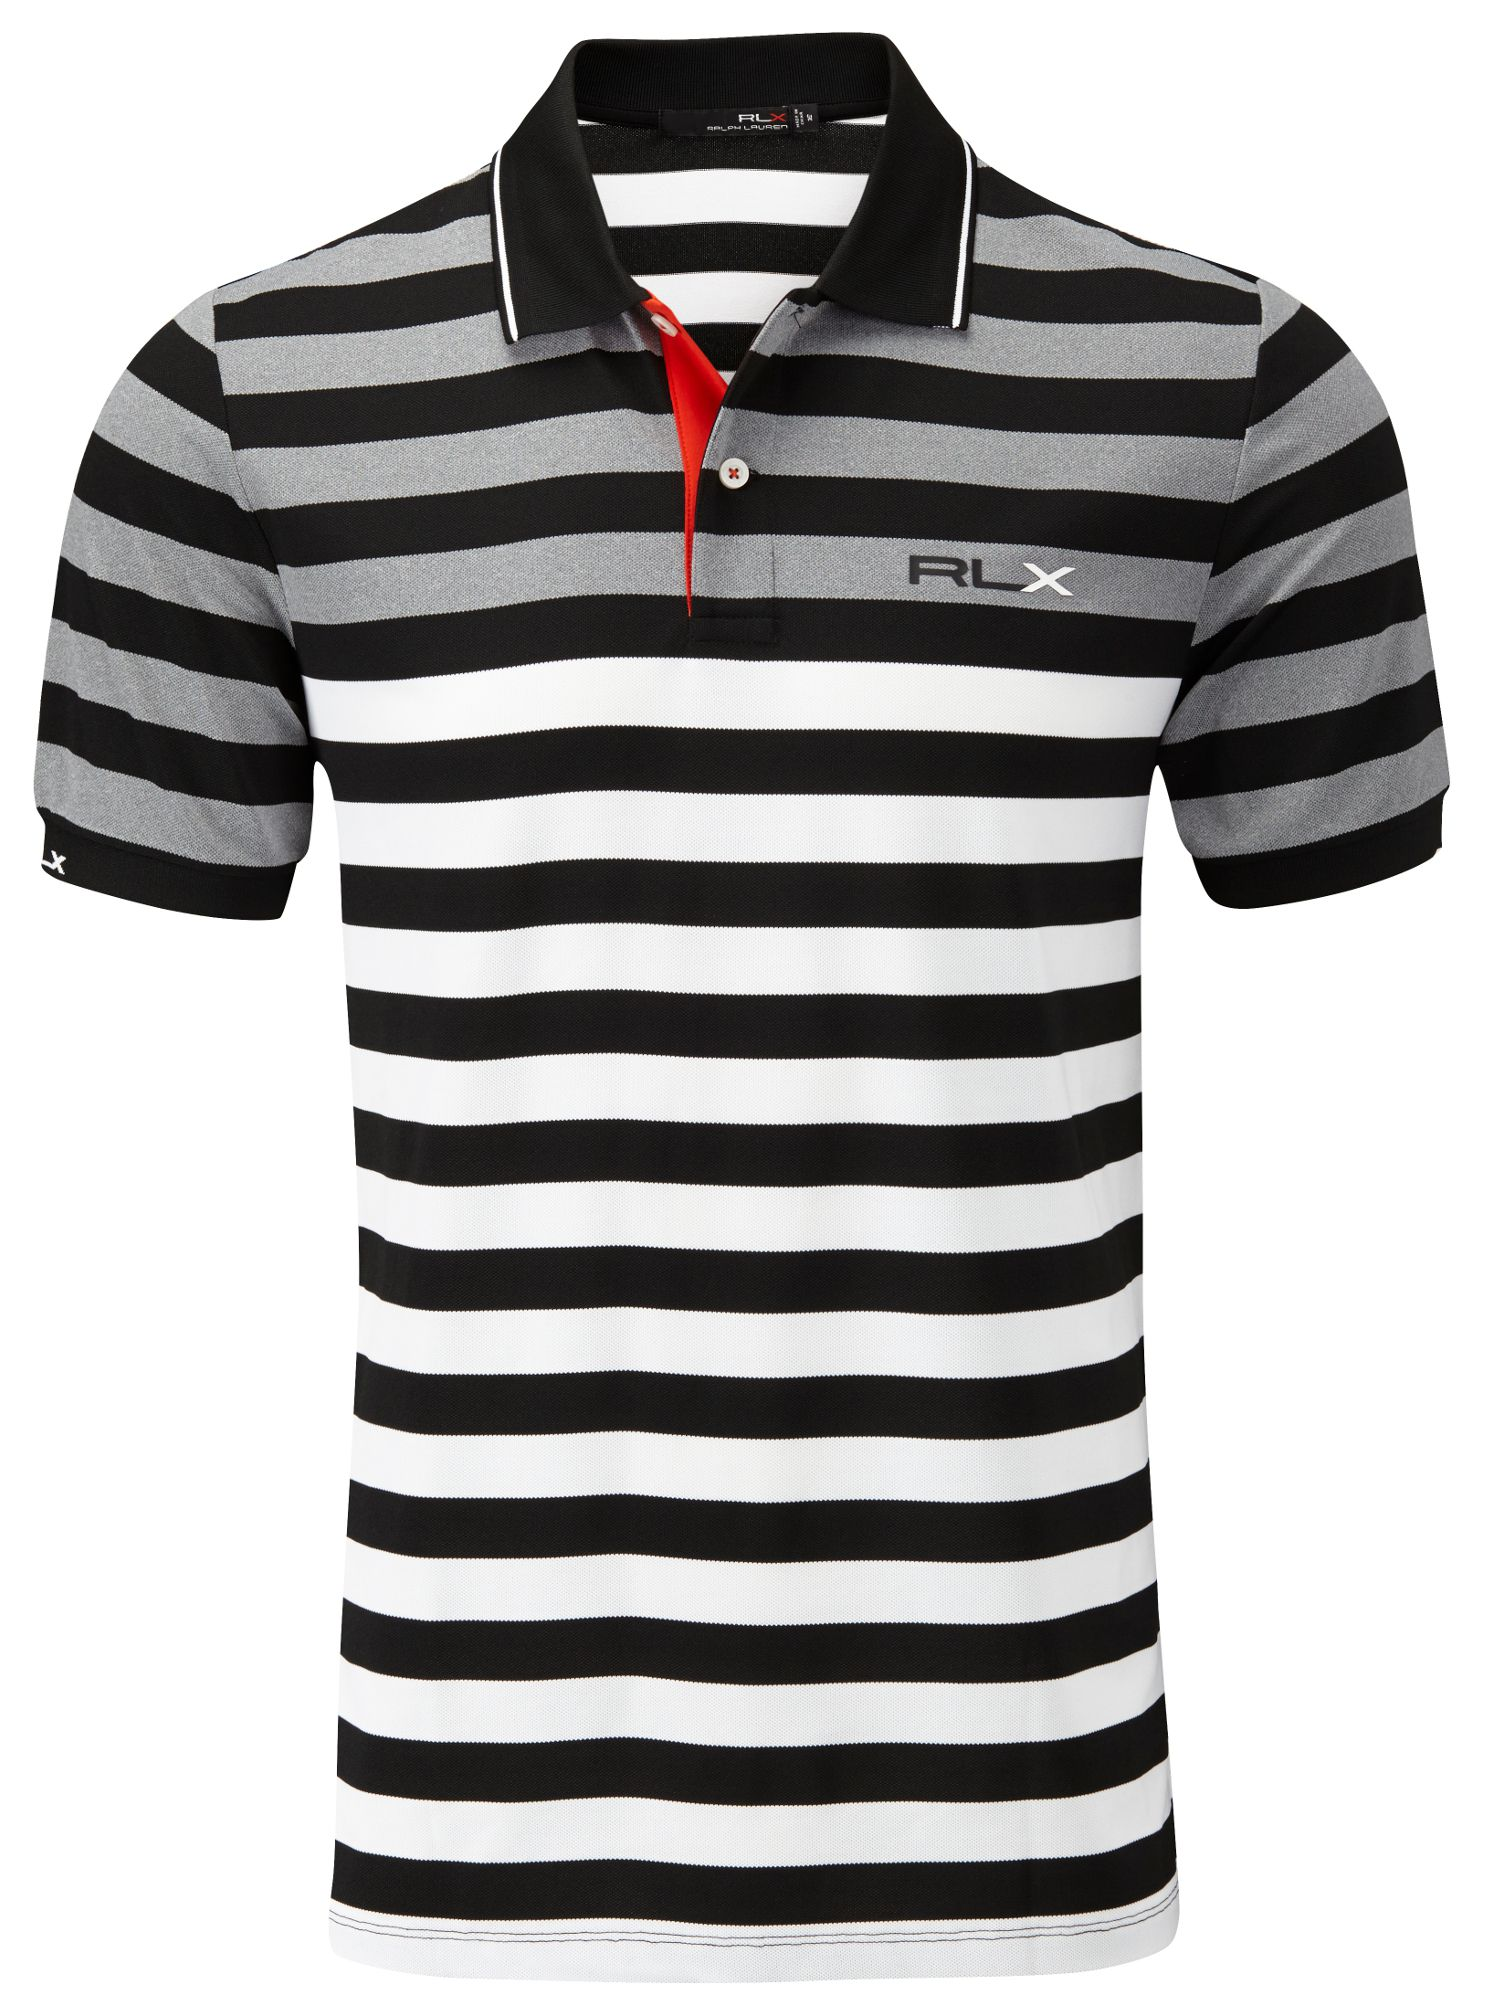 Multi stripe polo shirt tour fit